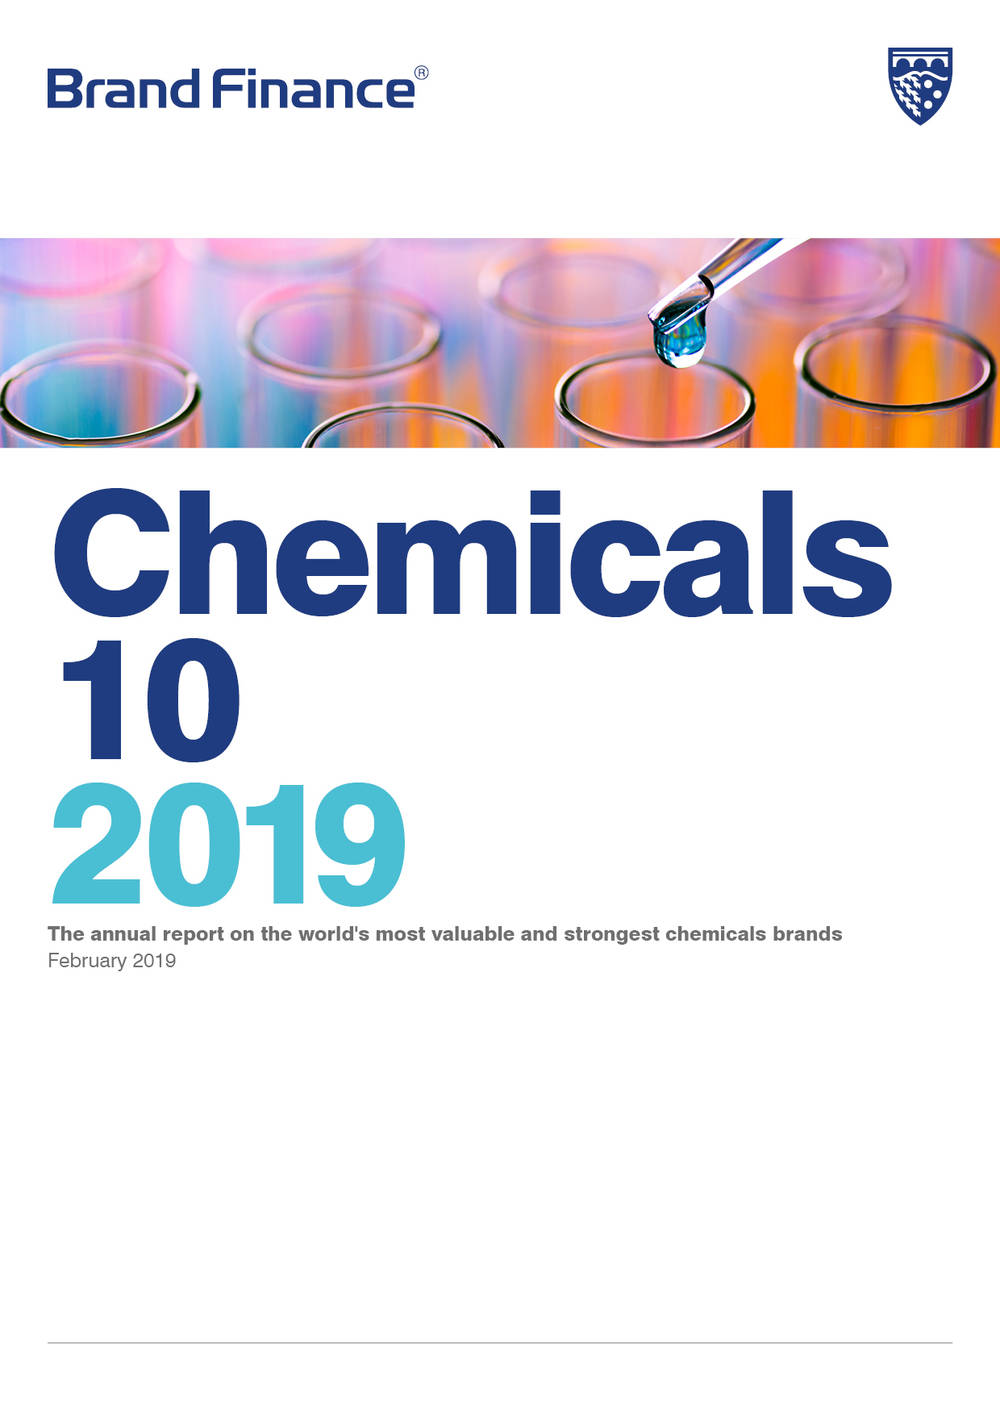 Brand Finance Chemicals 10 2019